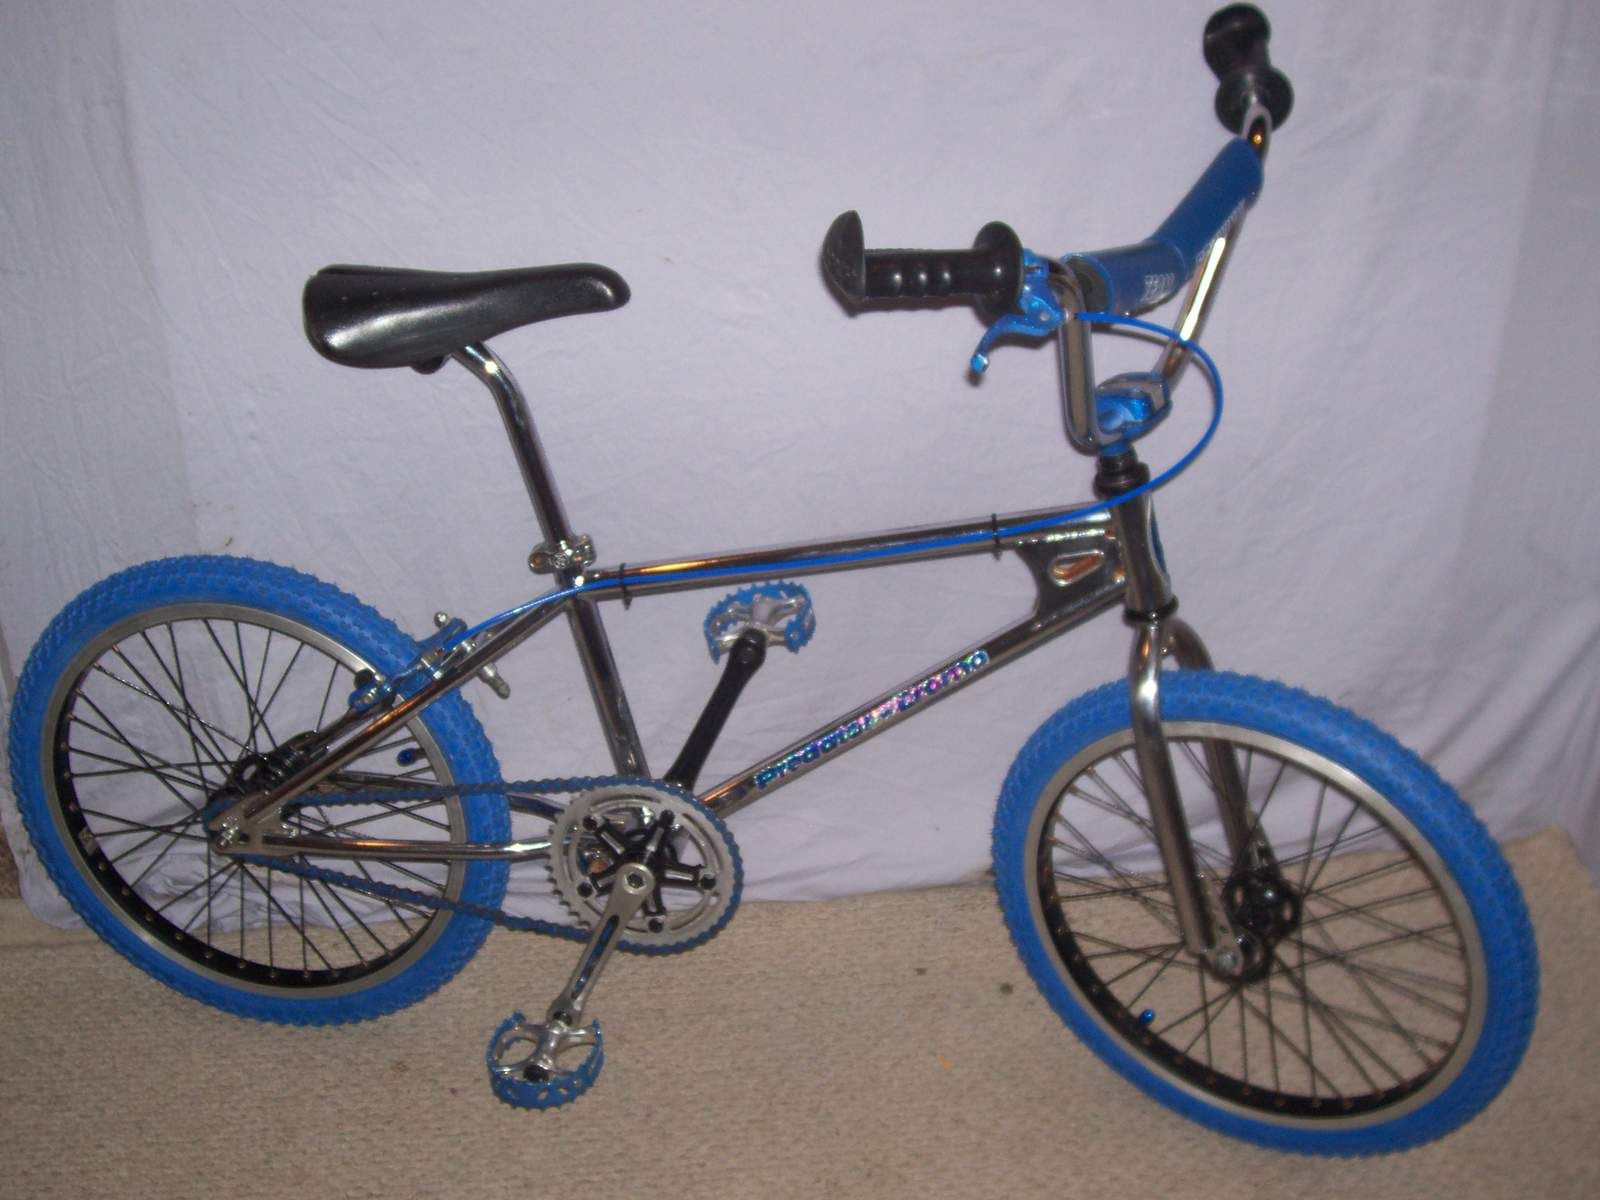 http://uploads.bmxmuseum.com/user-images/61851/101_39115ab1c28277.jpg